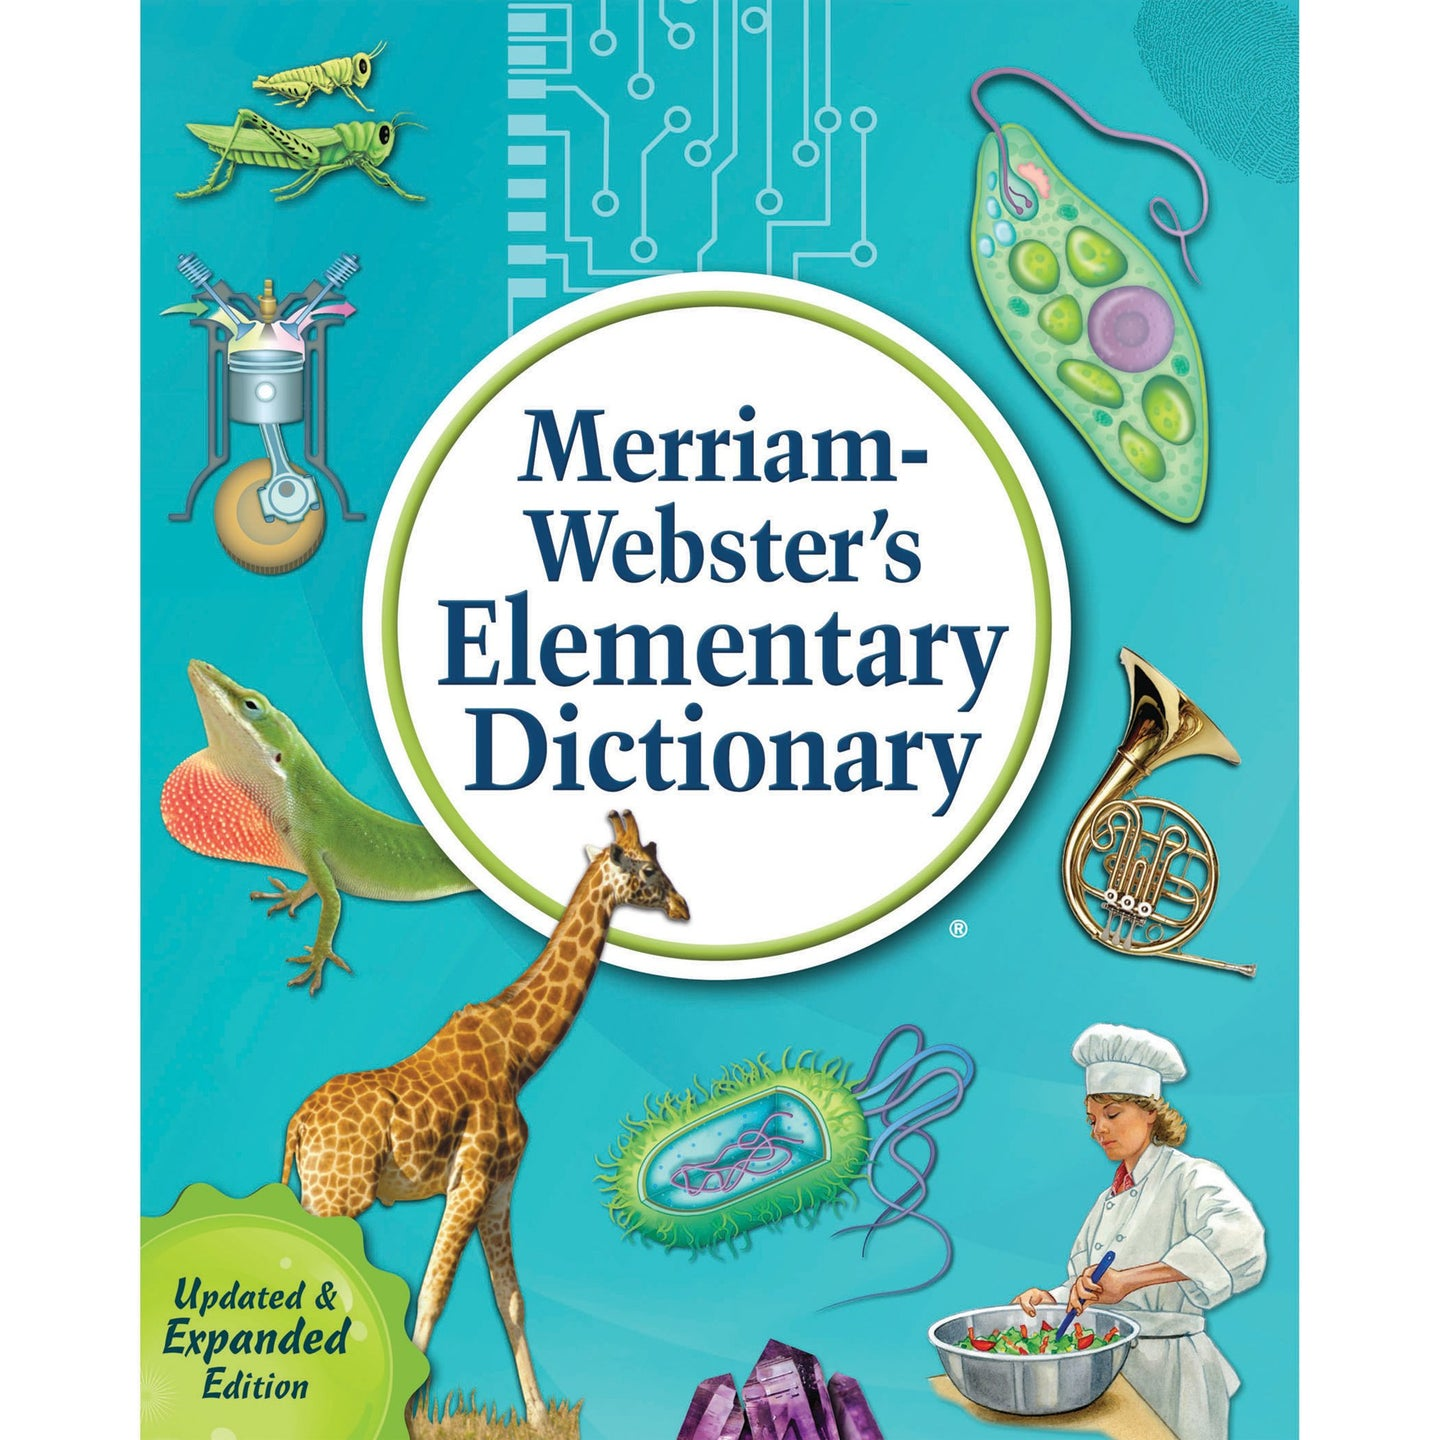 Merriam-Webster's Elementary Dictionary (New) - Little Green Schoolhouse Books